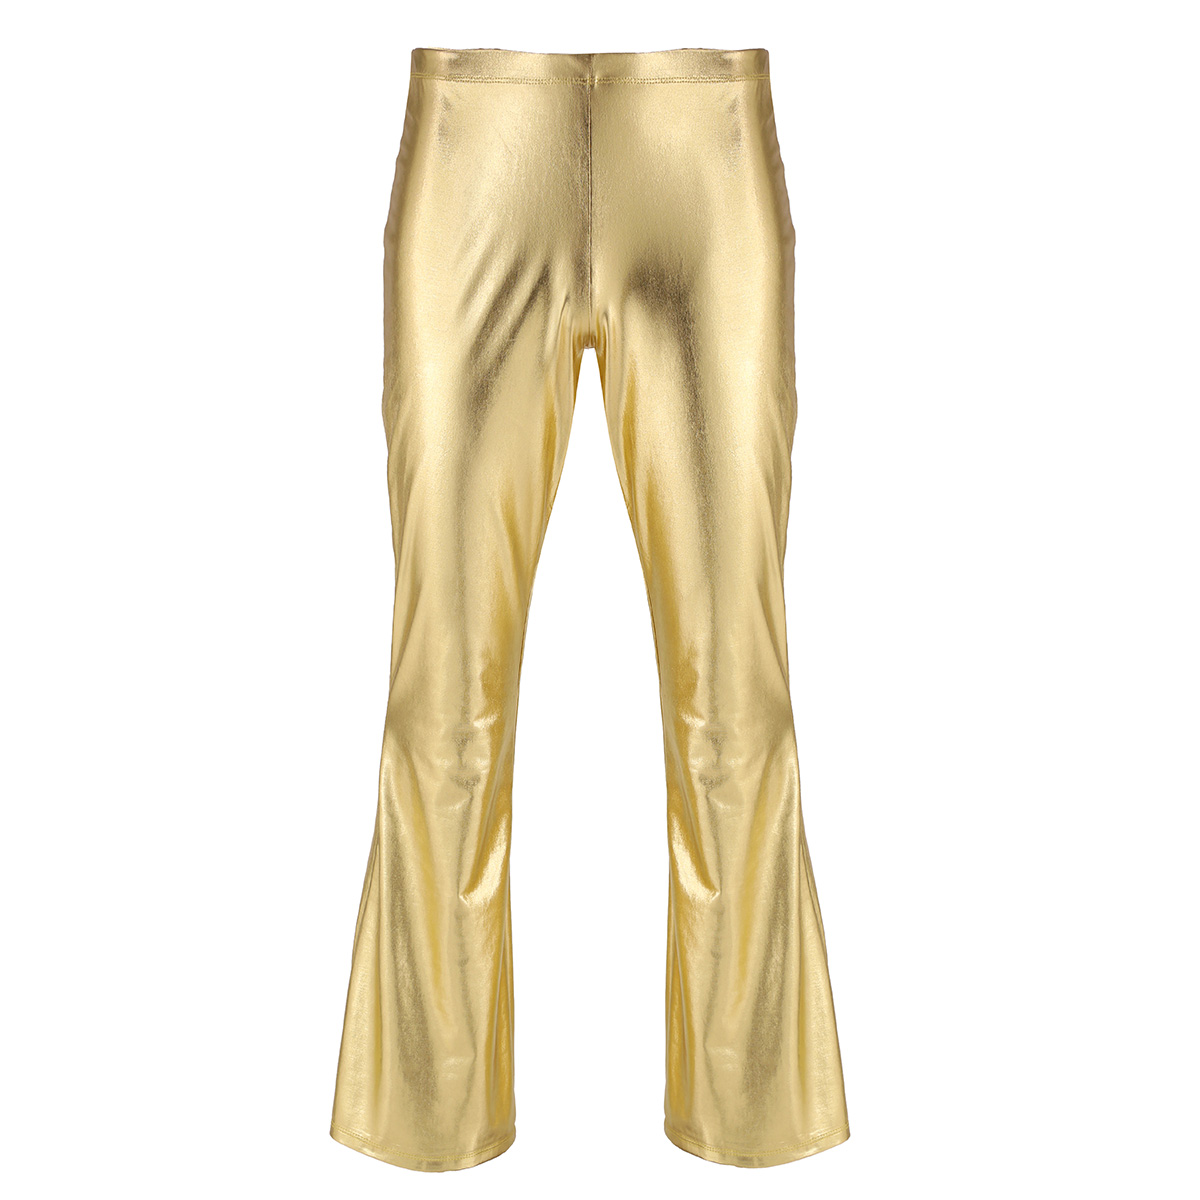 Adult Mens Moto Punk Style Party Pants Shiny Metallic Disco Pants with Bell Bottom Flared Long Pants Dude Costume Trousers 20